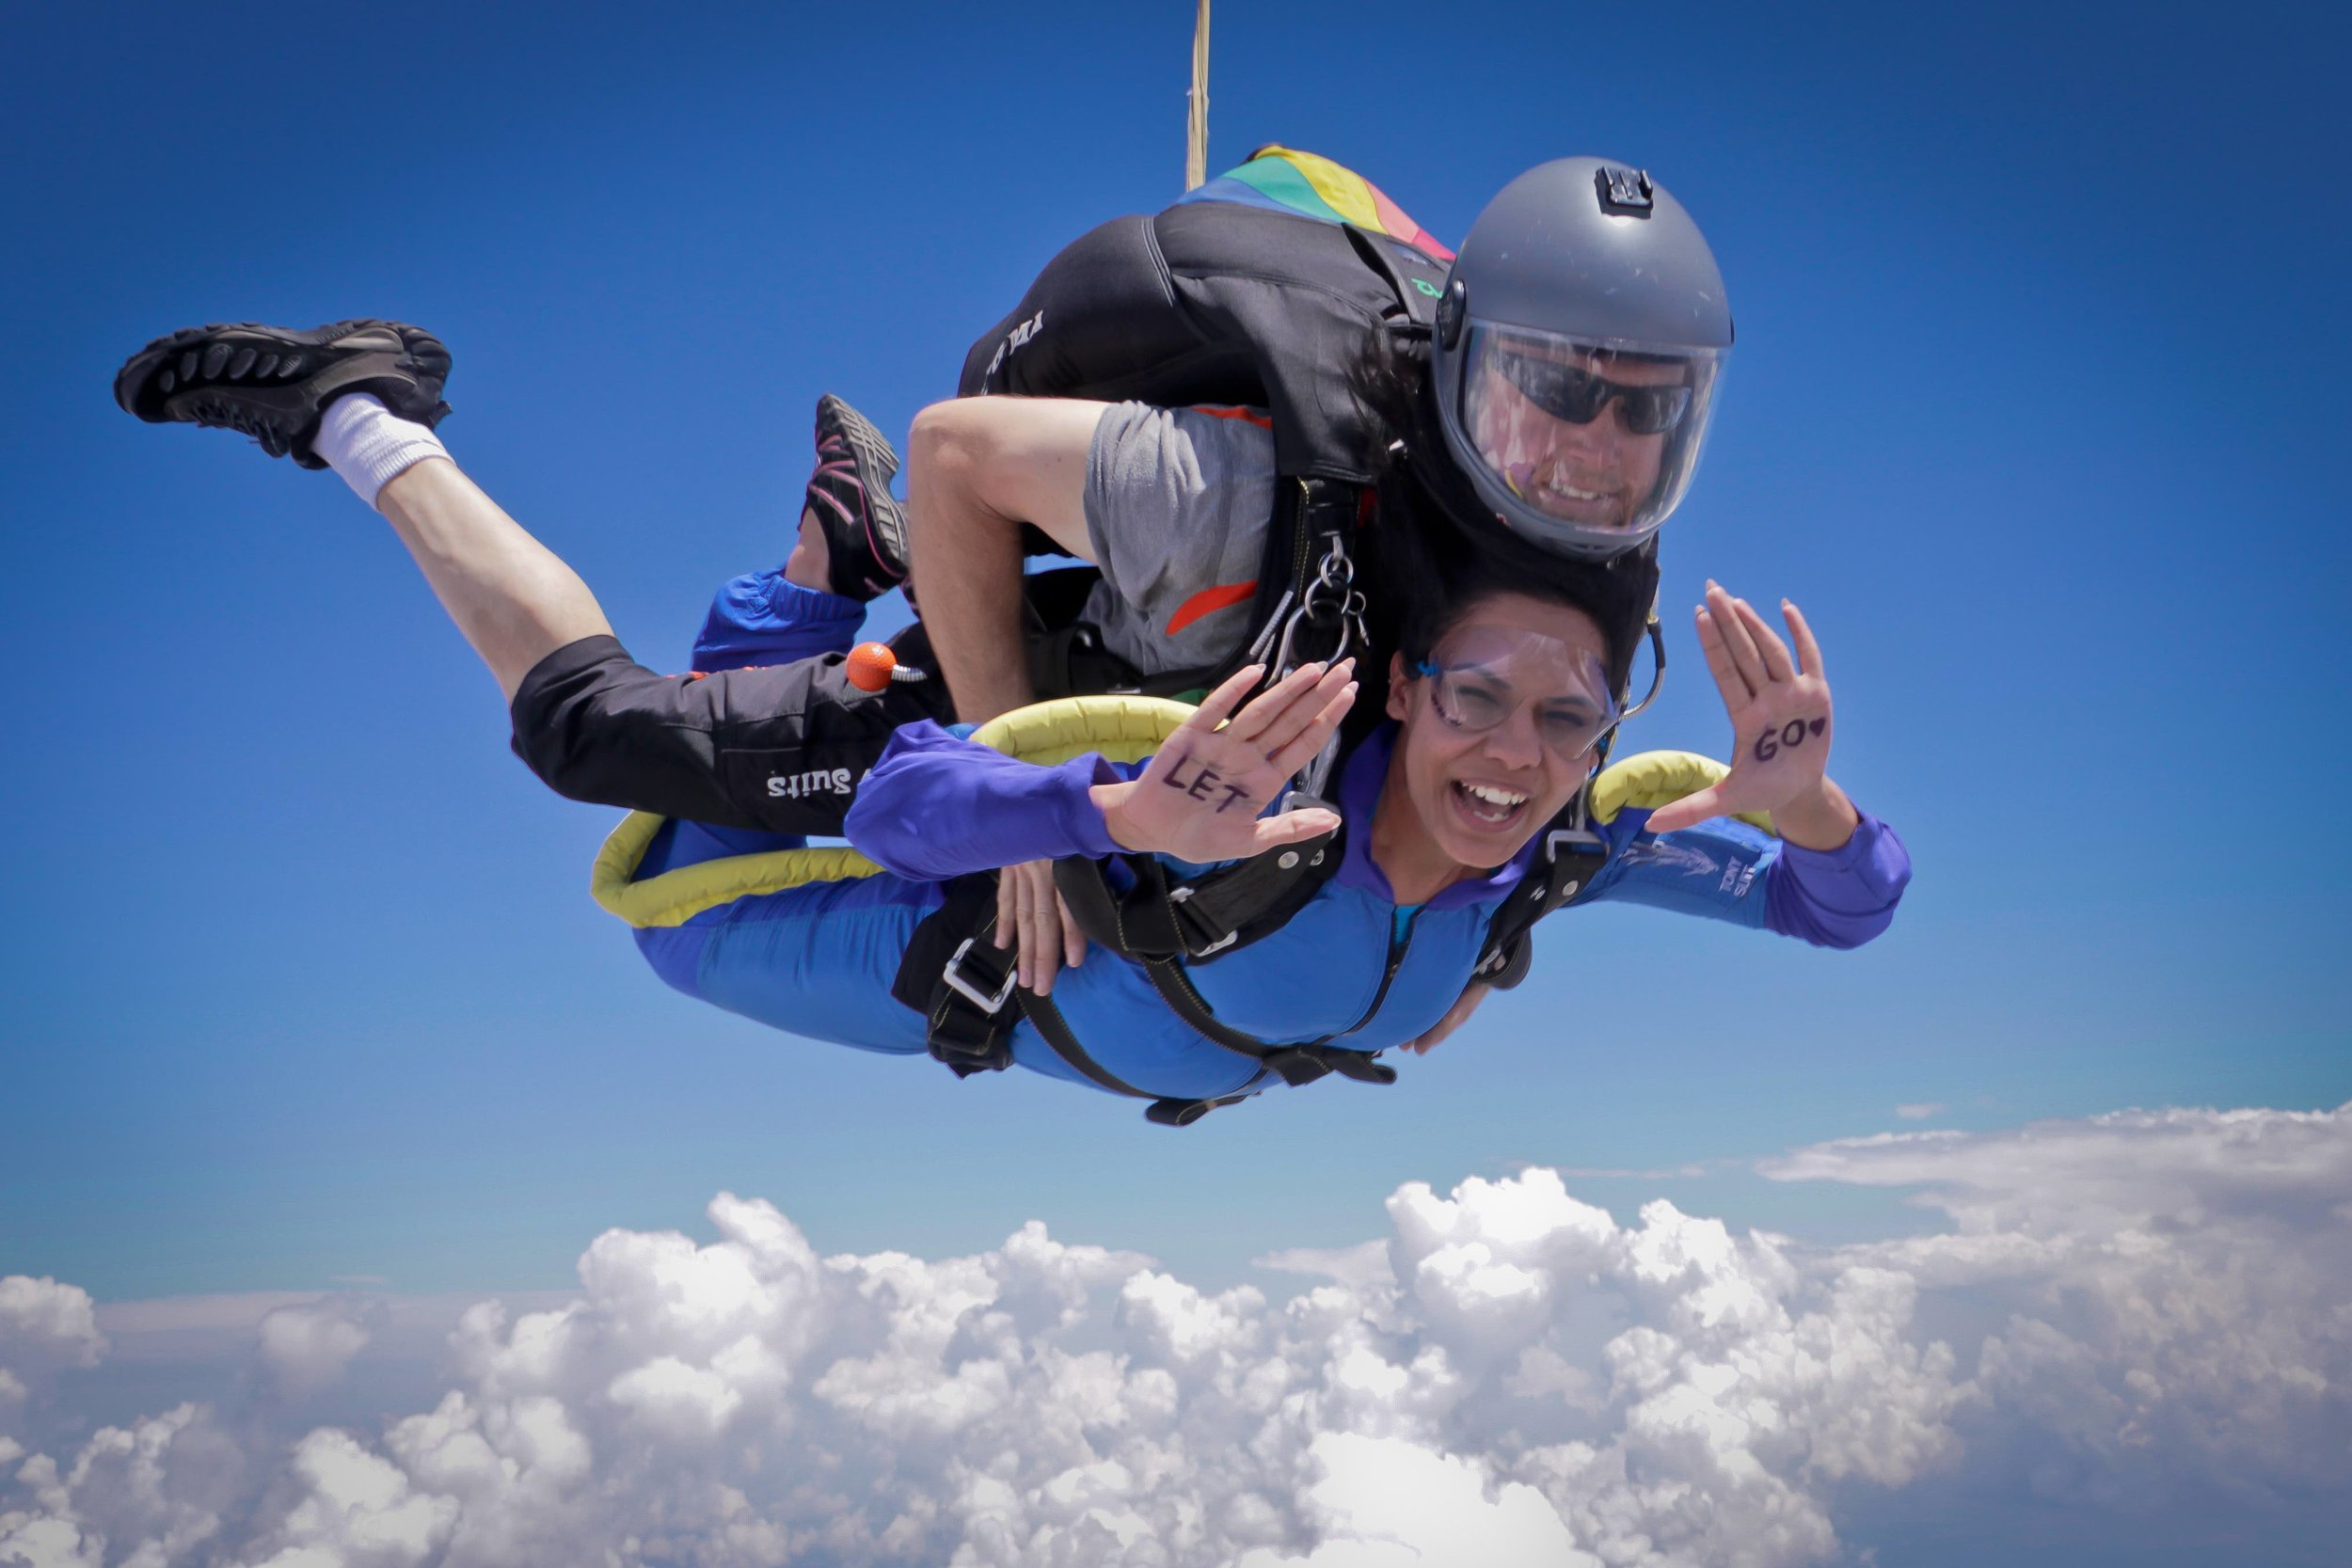 Life and skydive philosophy